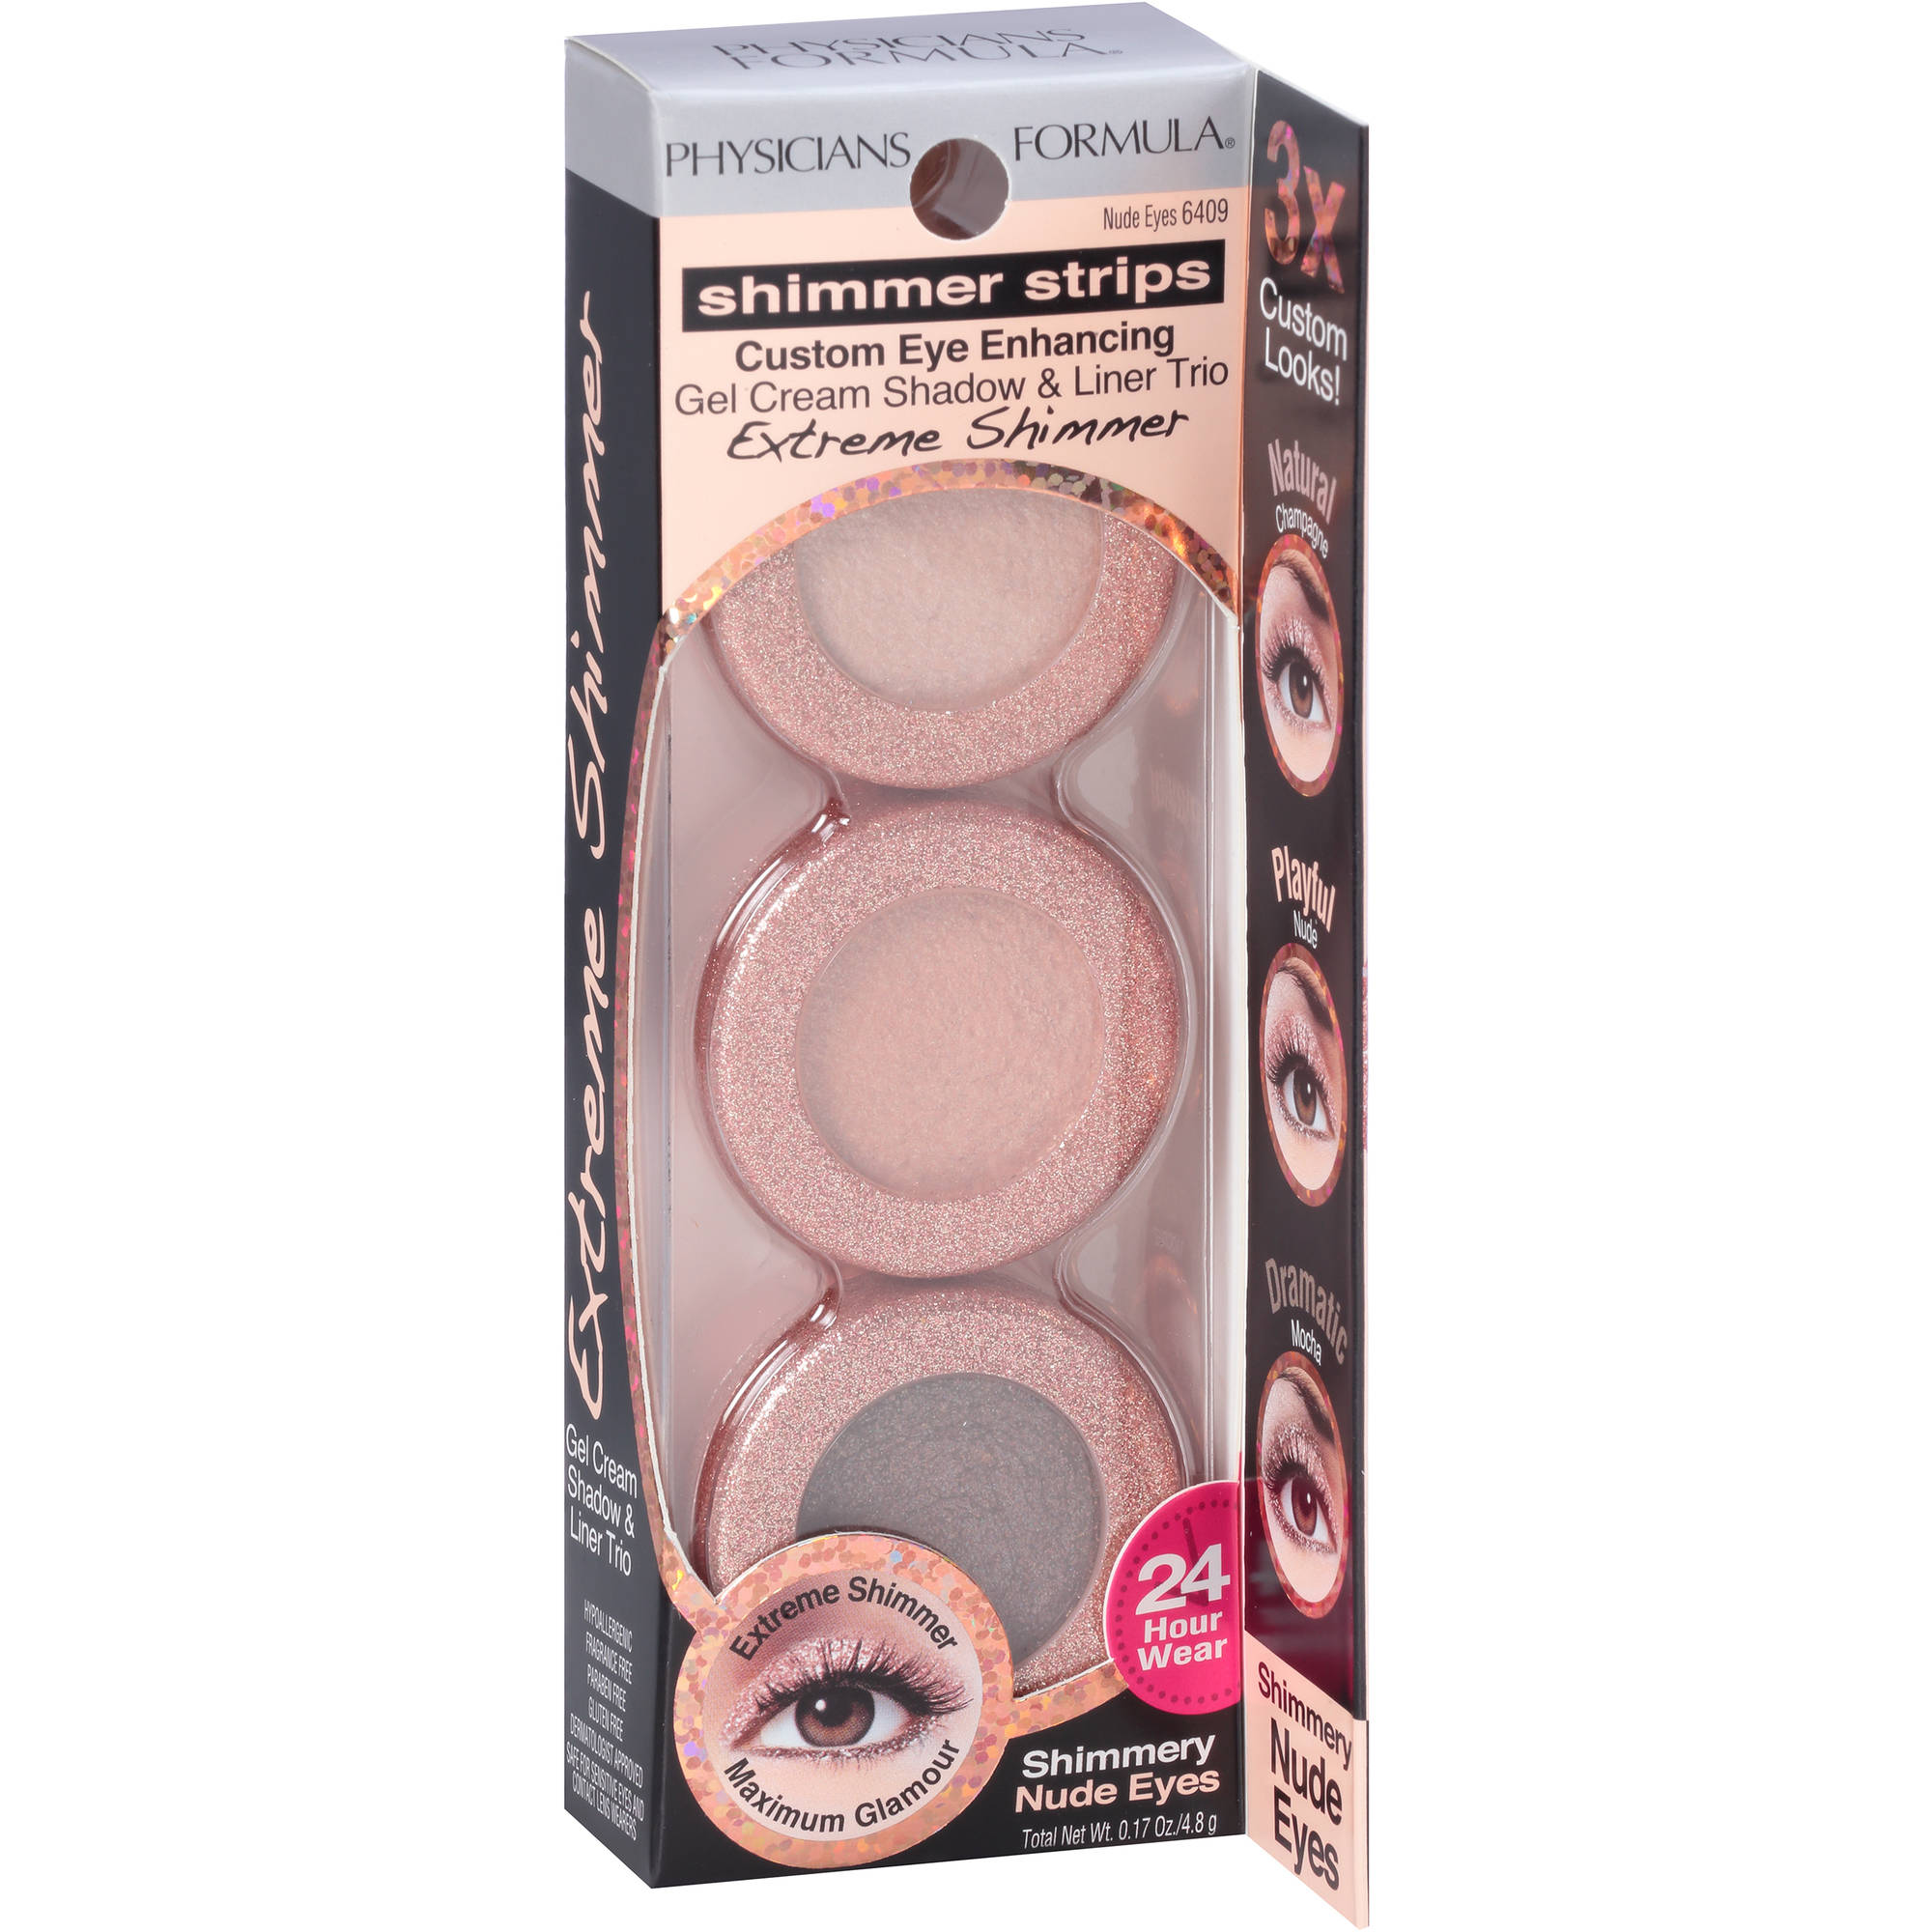 Physicians Formula Shimmer Strips Custom Eye Enhancing Gel Cream Shadow & Liner Trio, 6409 Nude Eyes, 0.17 oz